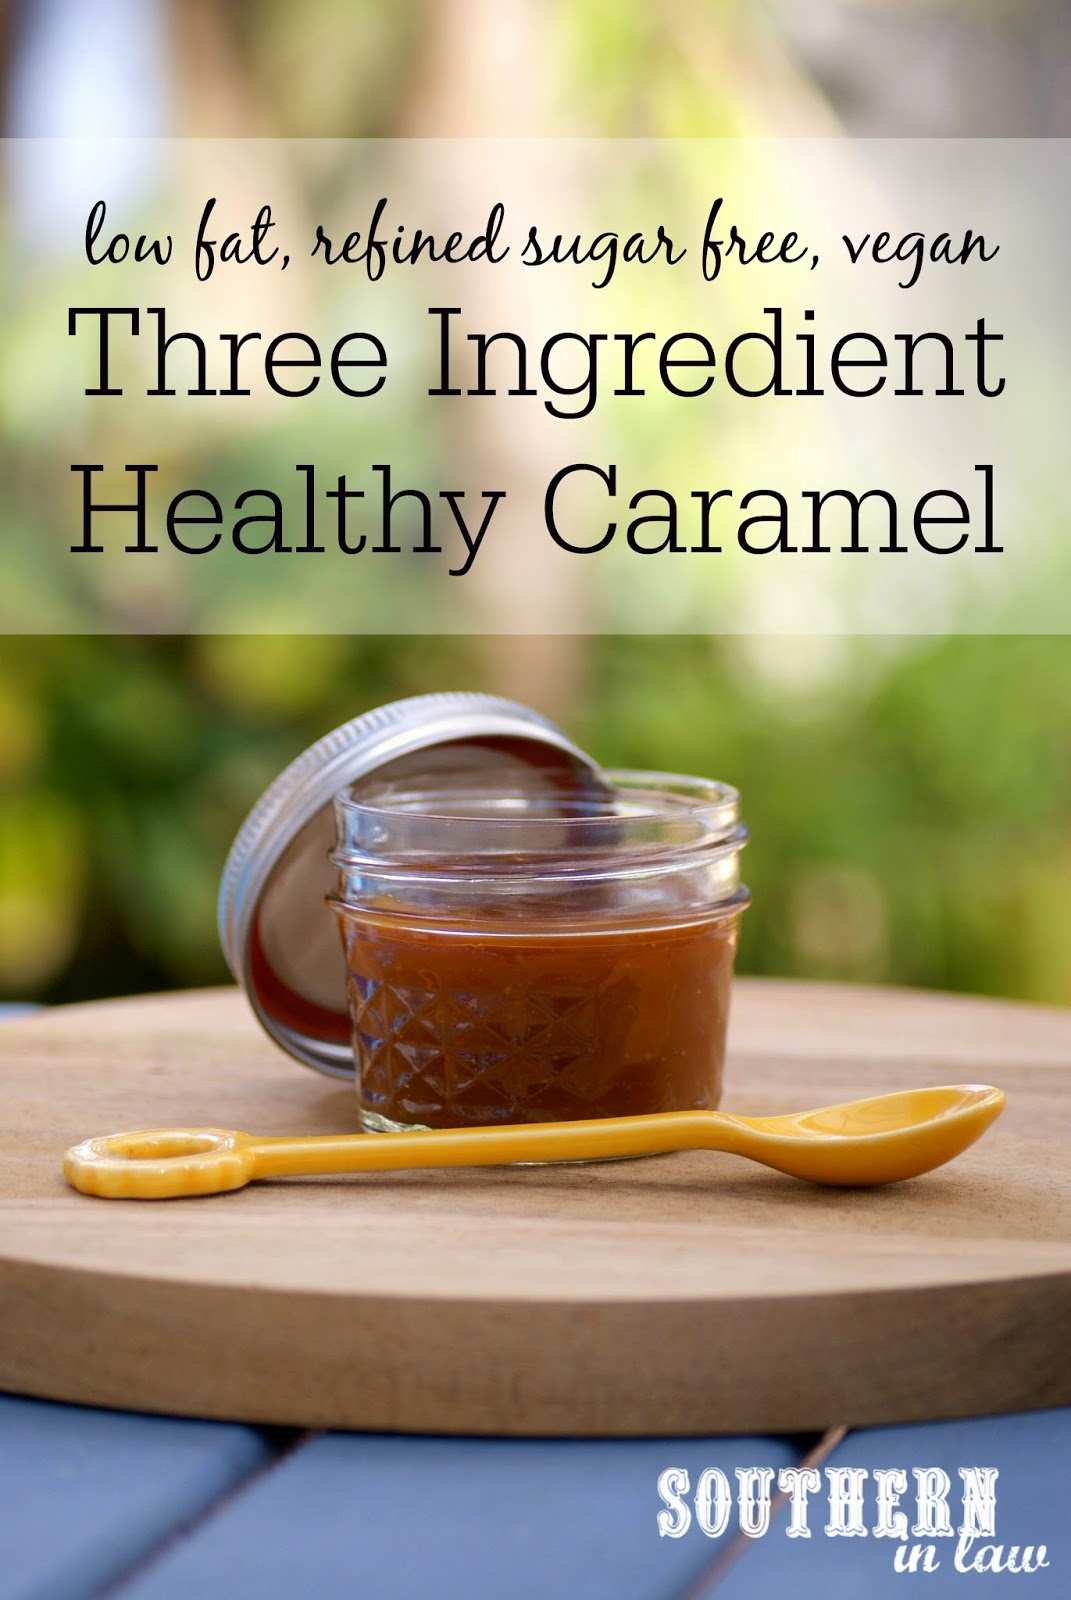 Three Ingredient Healthy Caramel Sauce - Low fat, gluten free, clean eating friendly, refined sugar free, vegan, dairy free and guilt free!